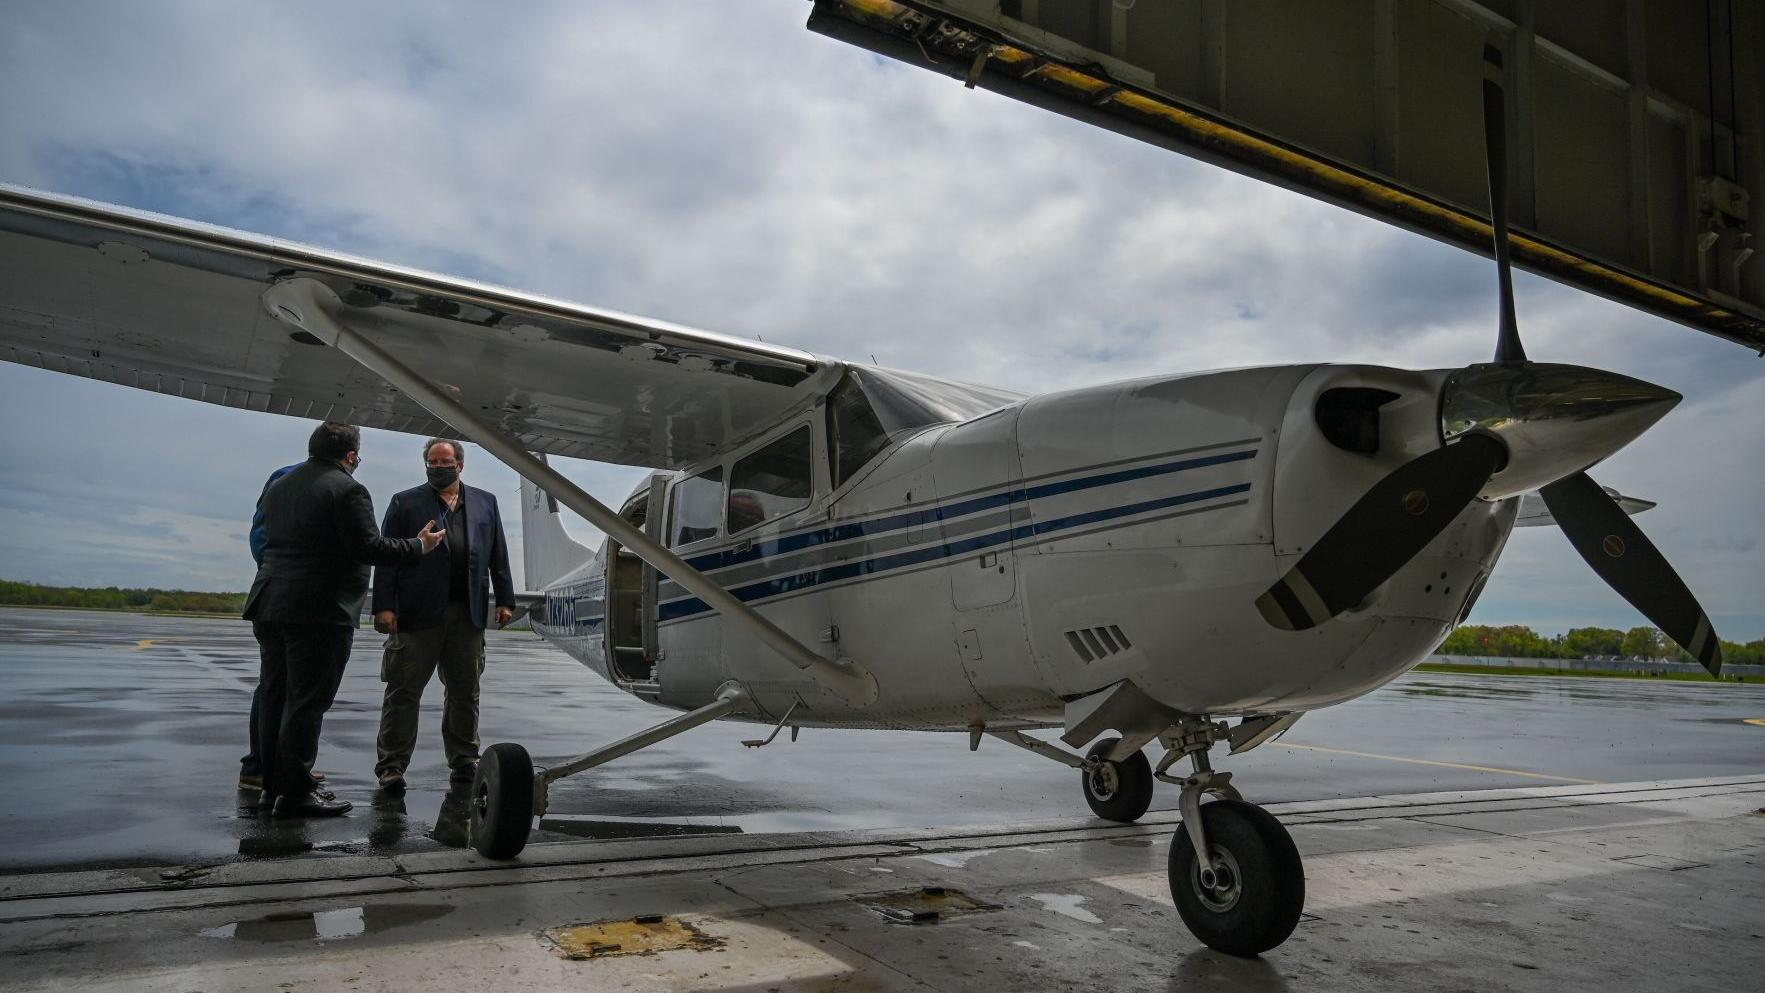 Philanthropists won't fund St. Louis aerial surveillance unless public money also is committed